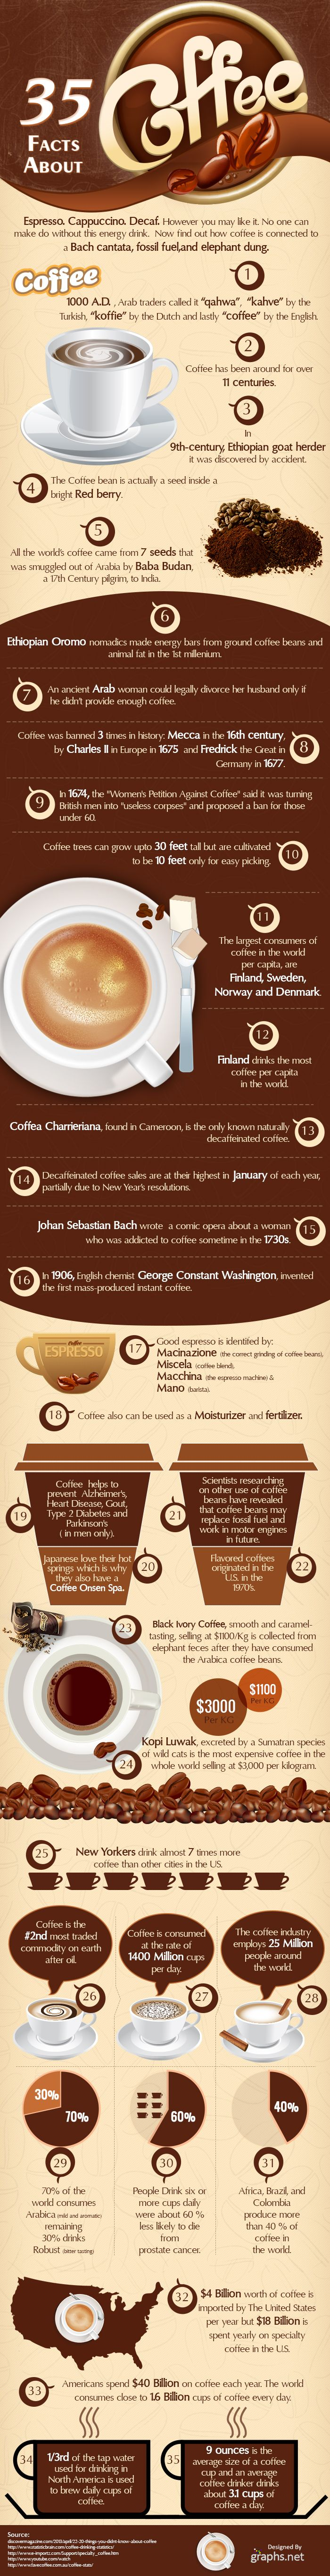 Interesting Facts About Coffee That Coffee Lovers Shouldn't Miss